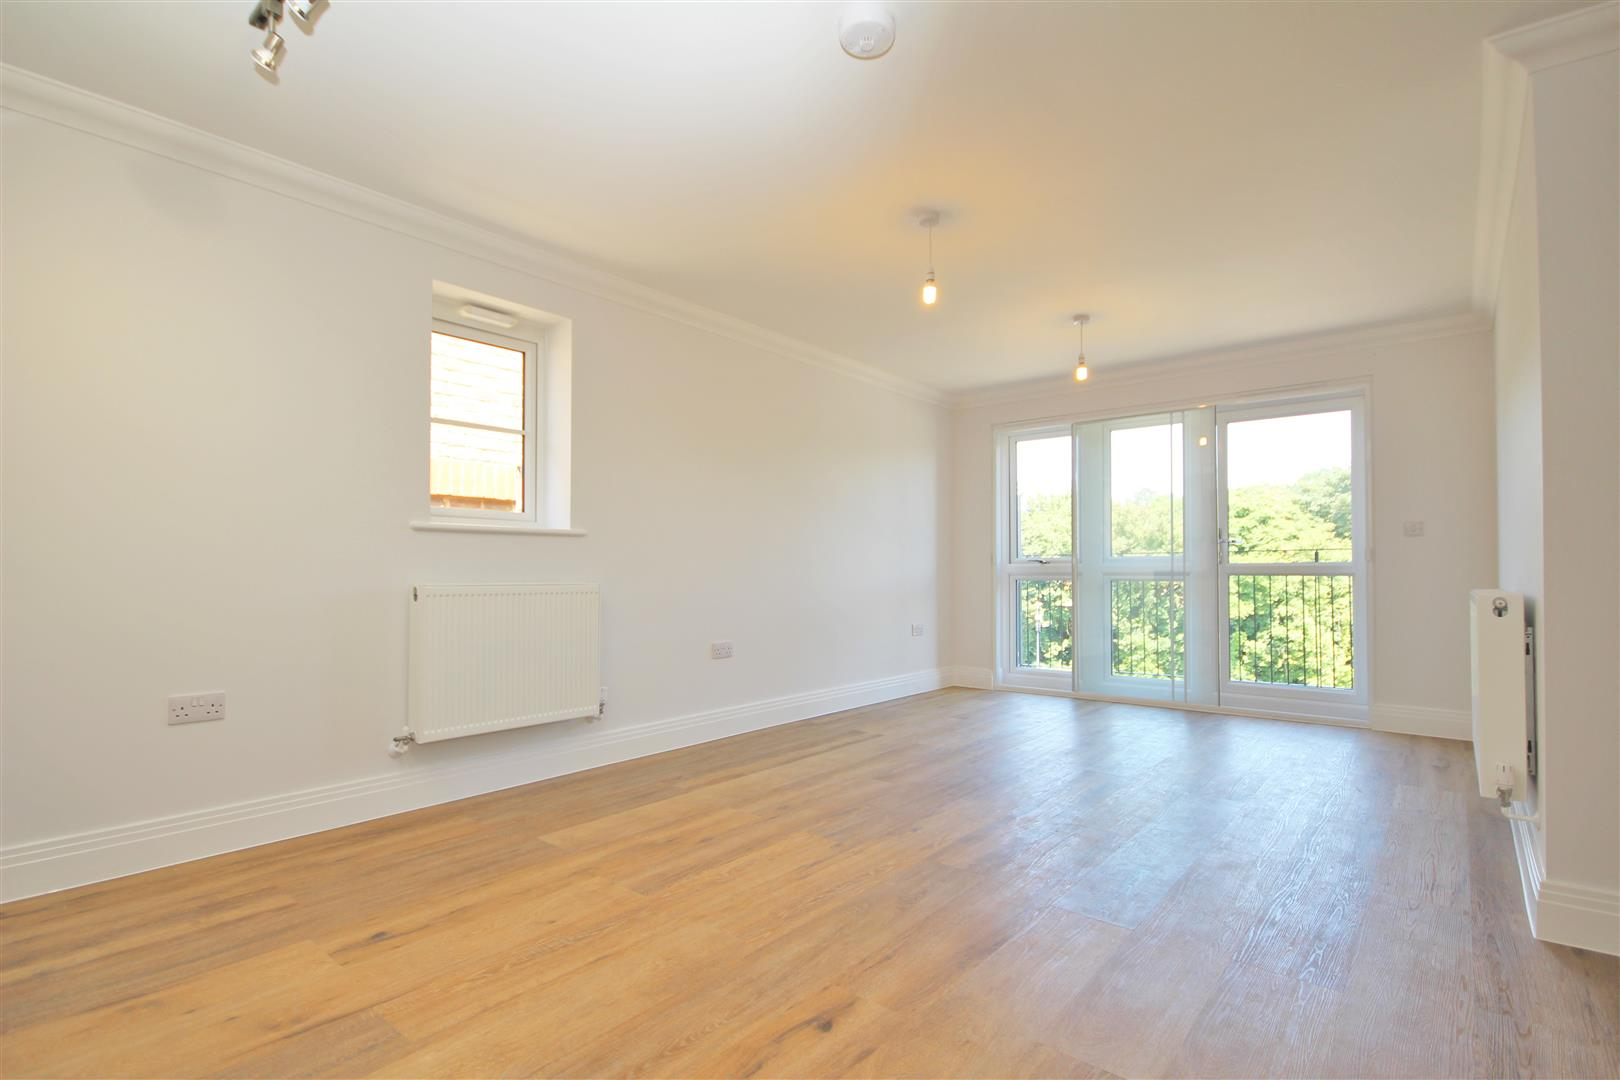 2 bed Flat to rent - (Property Image 3)